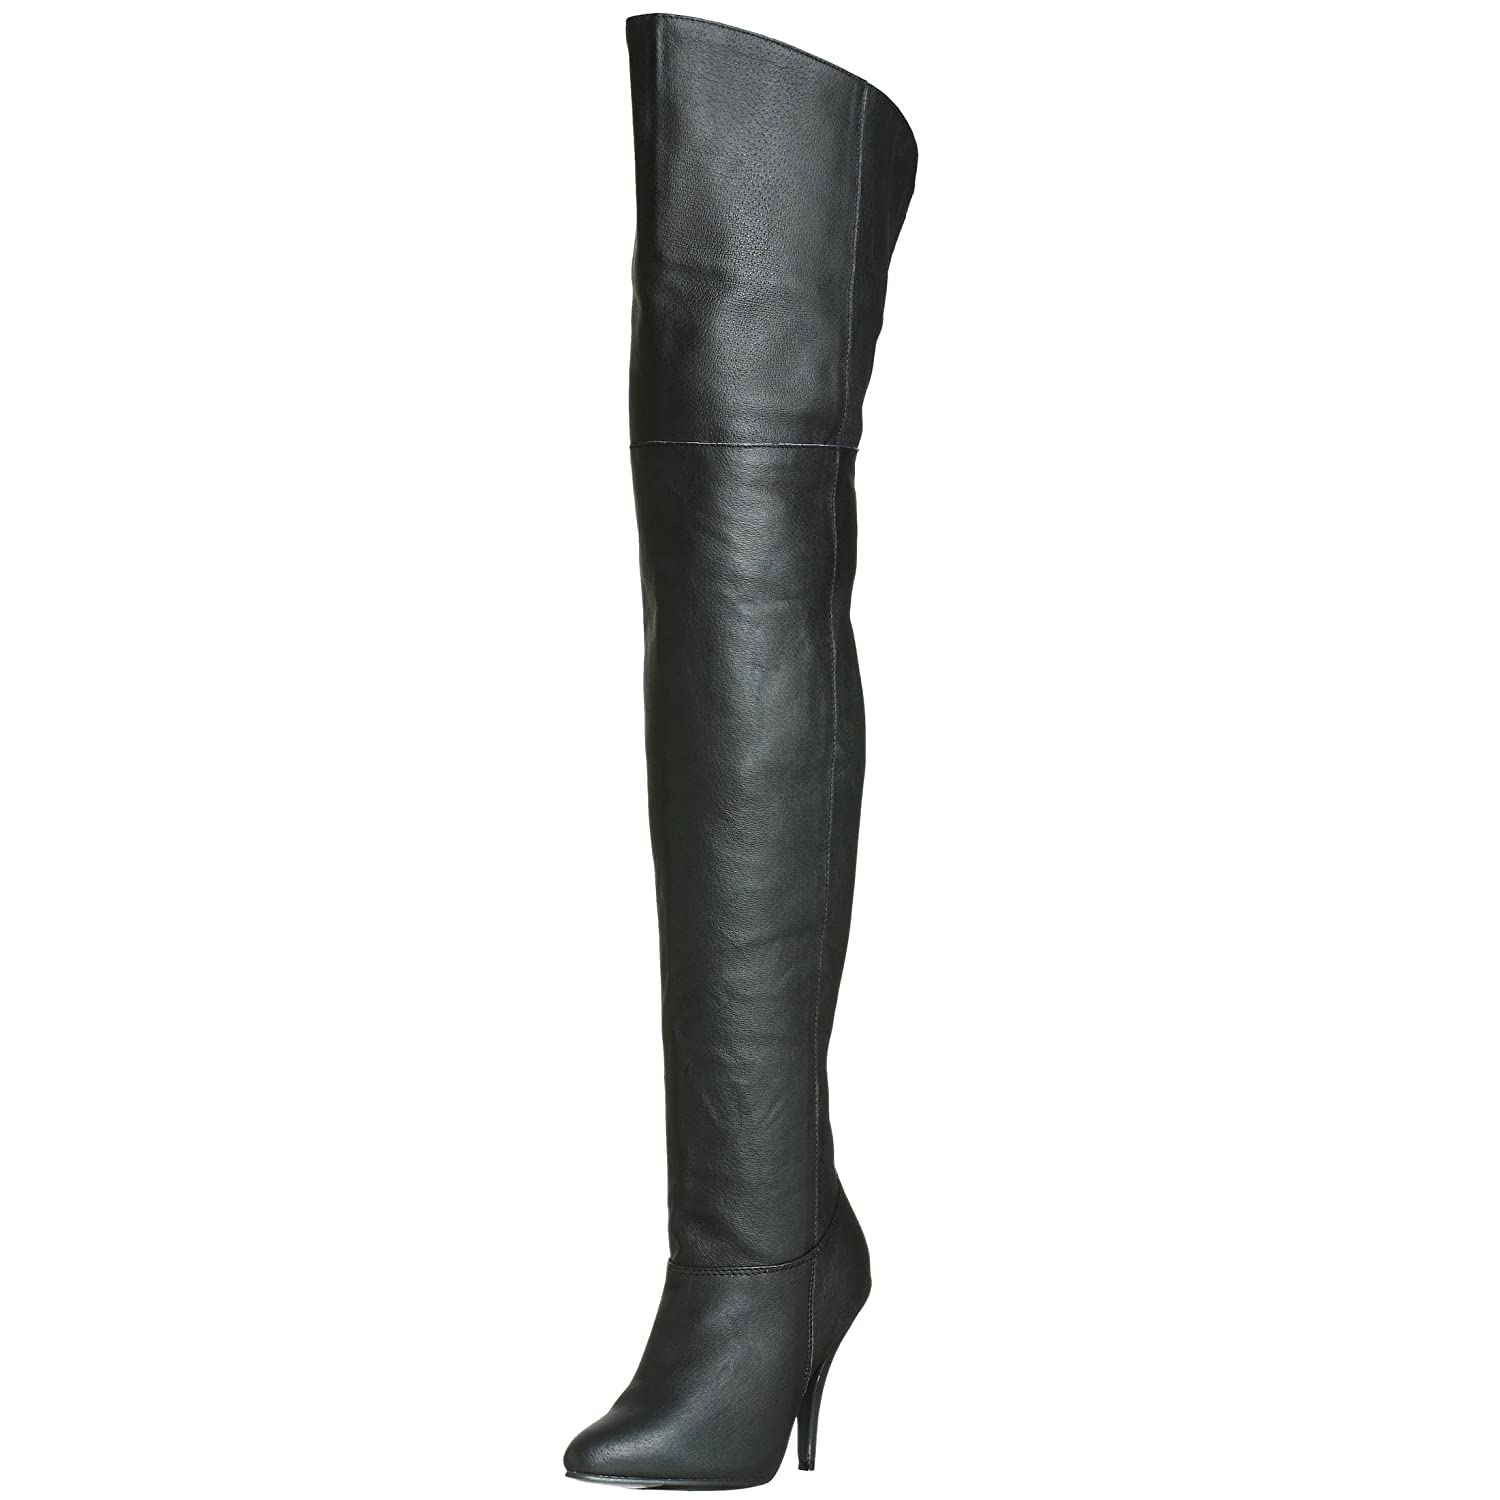 4 inch thigh high boots | Gommap Blog